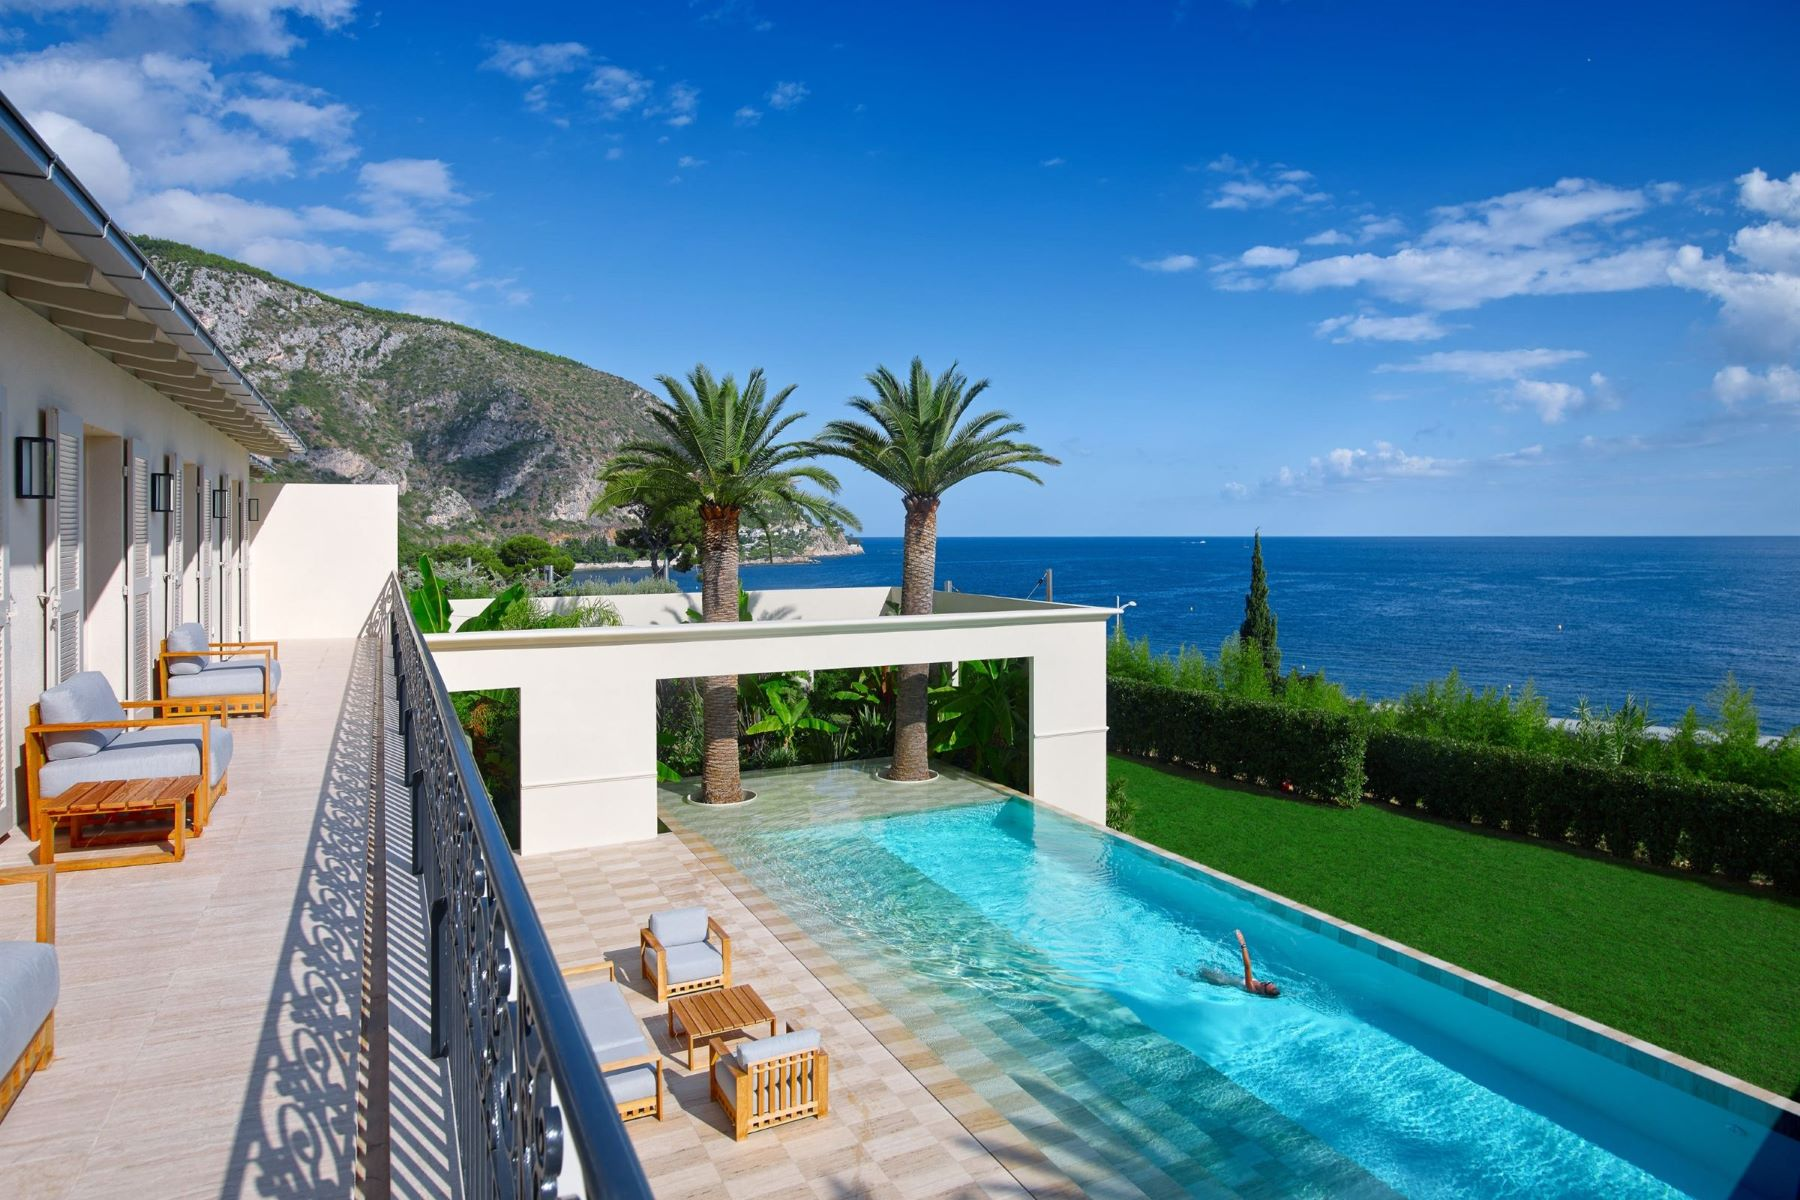 Single Family Homes for Sale at Luxurious villa in Èze with tennis court, pool and stunning sea views Eze, Provence-Alpes-Cote D'Azur 06360 France